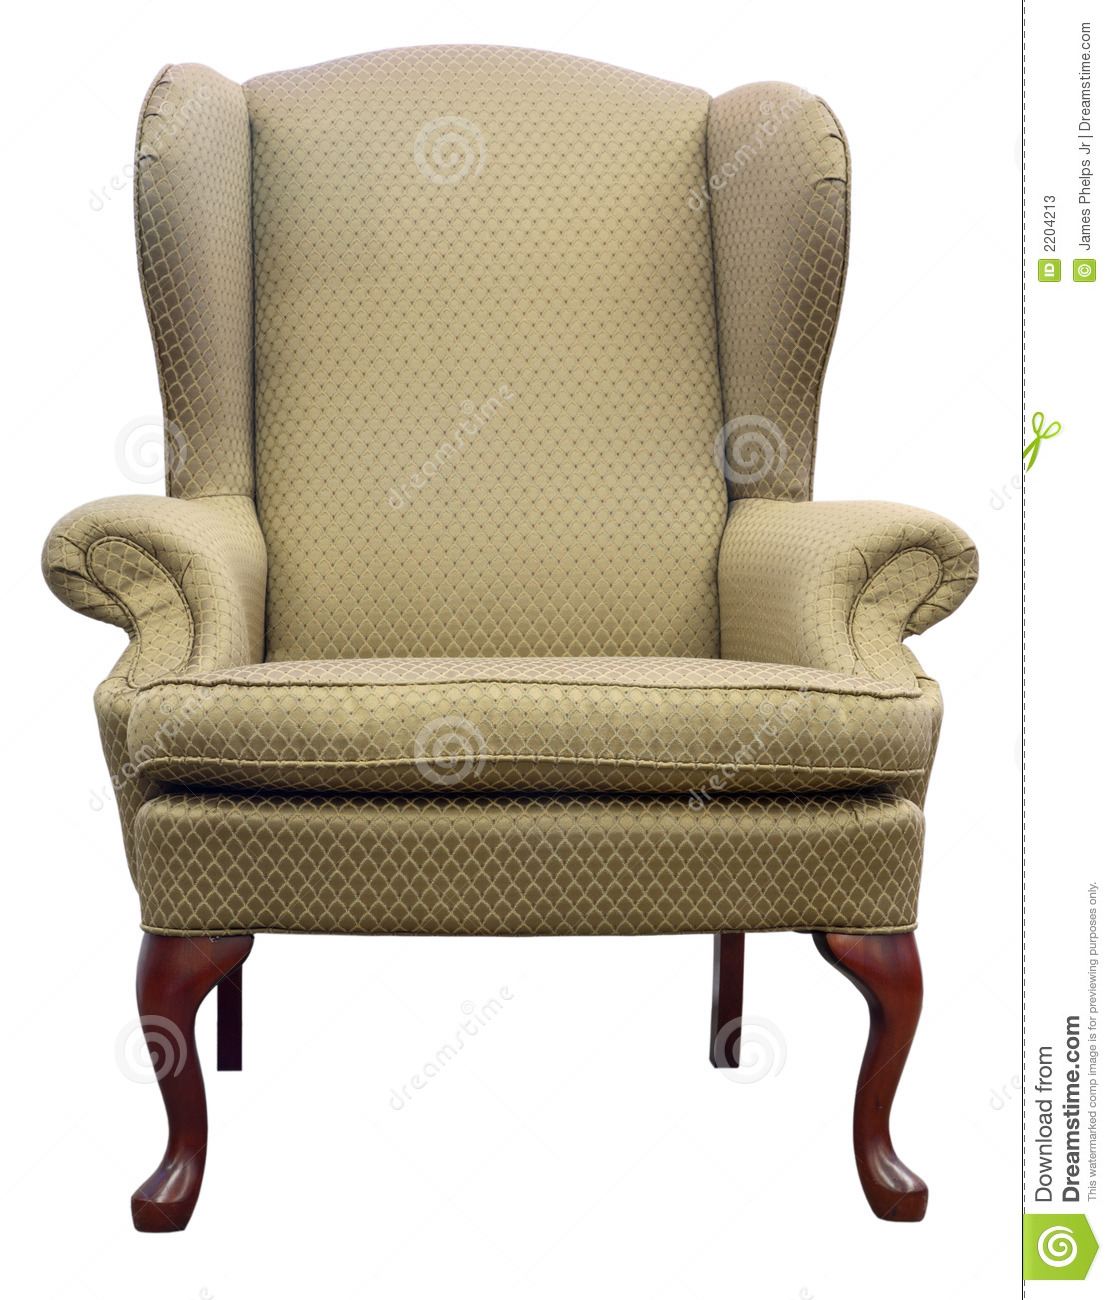 Queen Anne Wing Chair Stock Image Image Of Anne Design